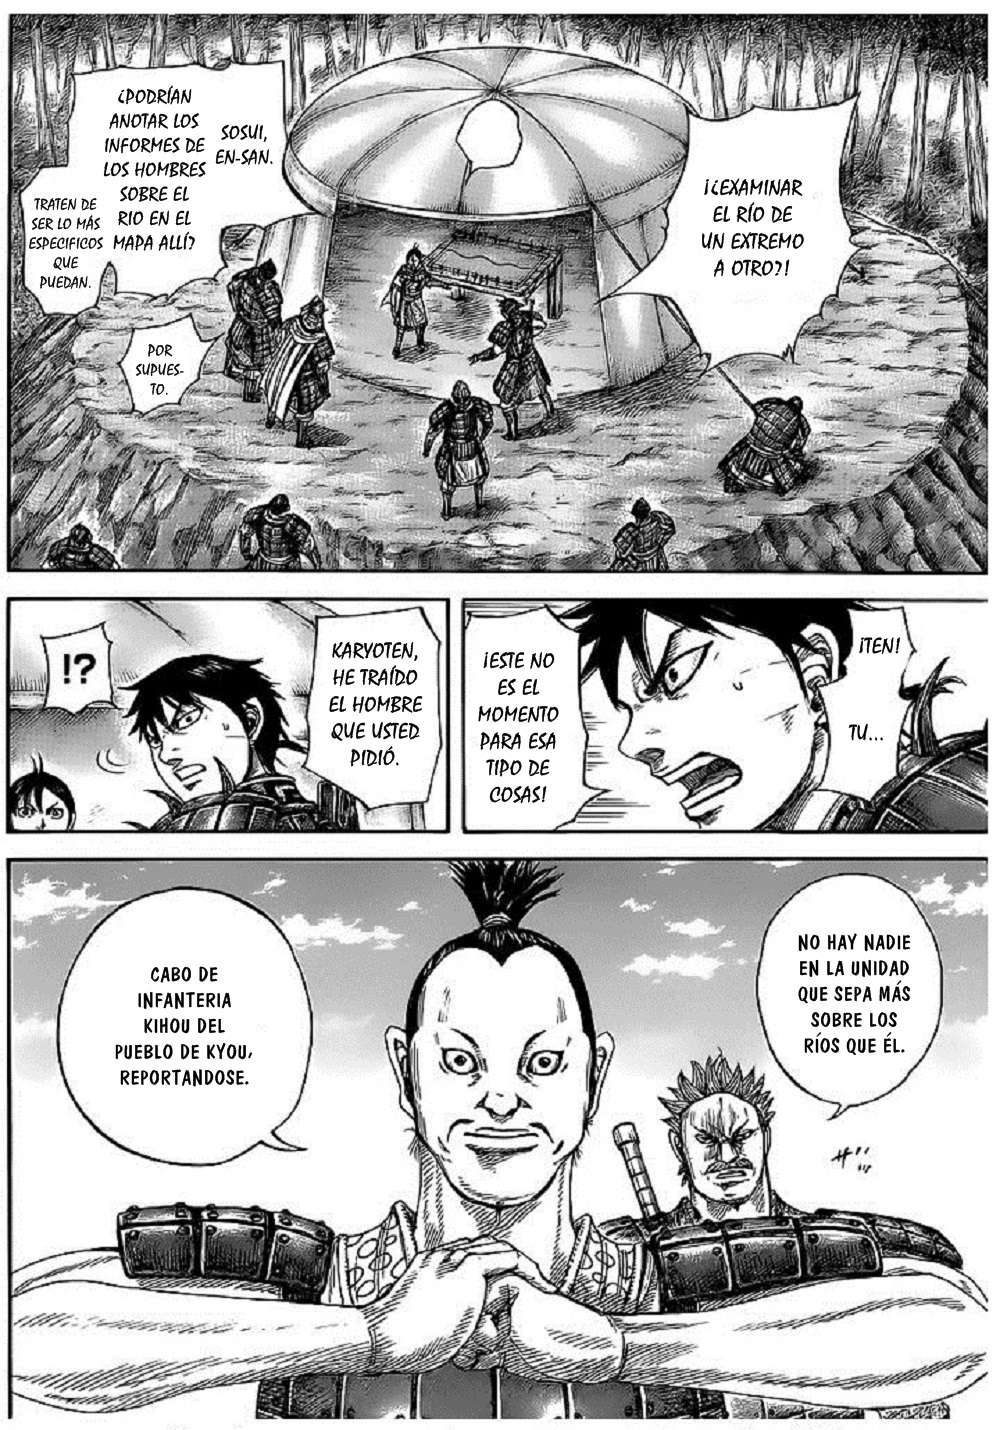 http://c5.ninemanga.com/es_manga/19/12307/431197/1bd28104c466d9f78b0b025a6469e56f.jpg Page 5